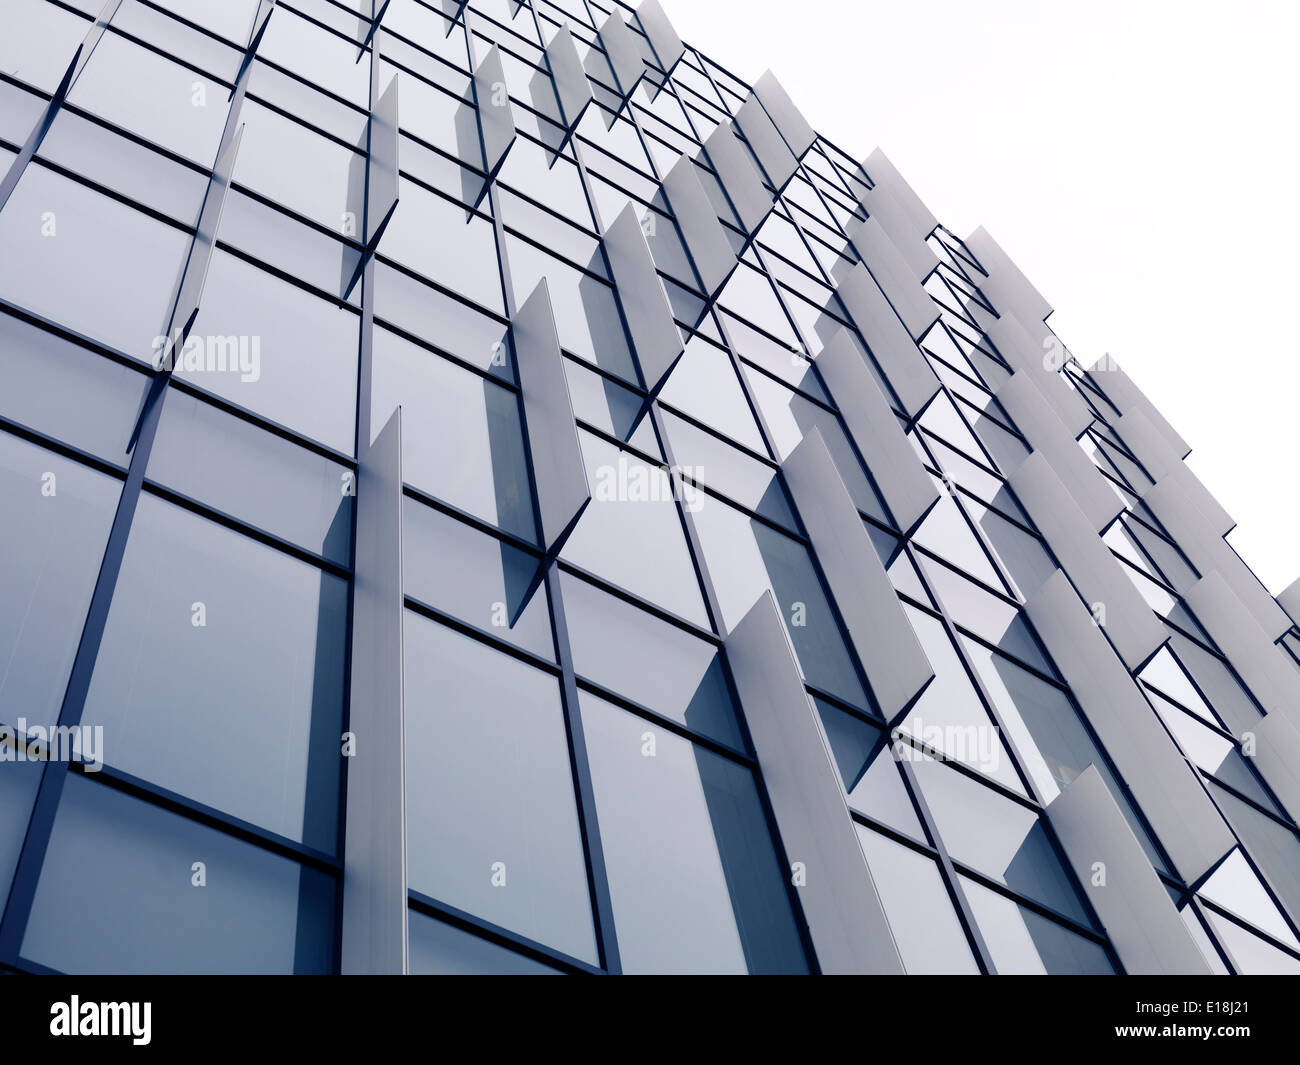 Abstract Modern Architecture Glass And Metal Building